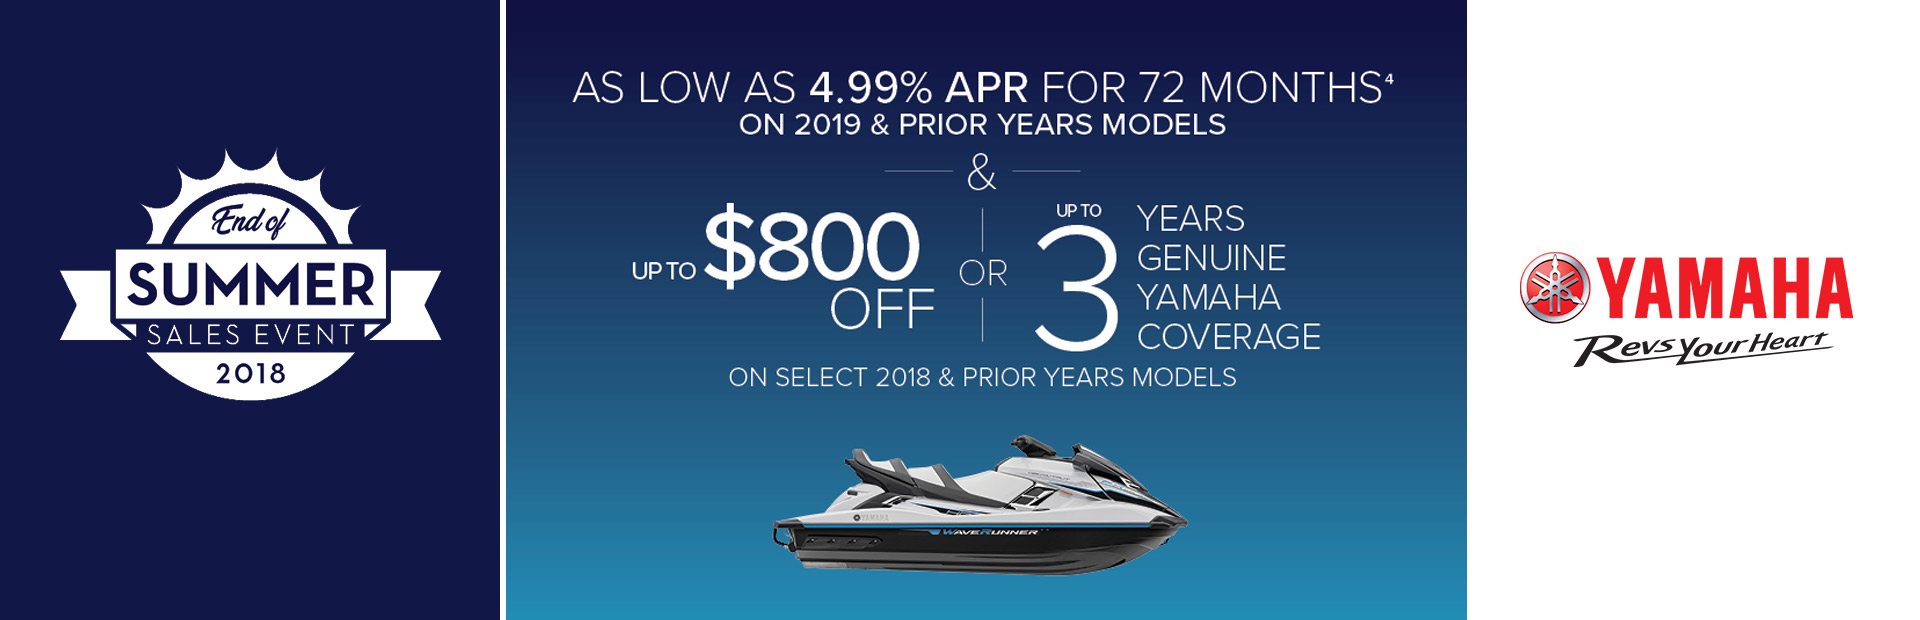 Yamaha: End of Season Sales Event - As Low As 4.99% APR